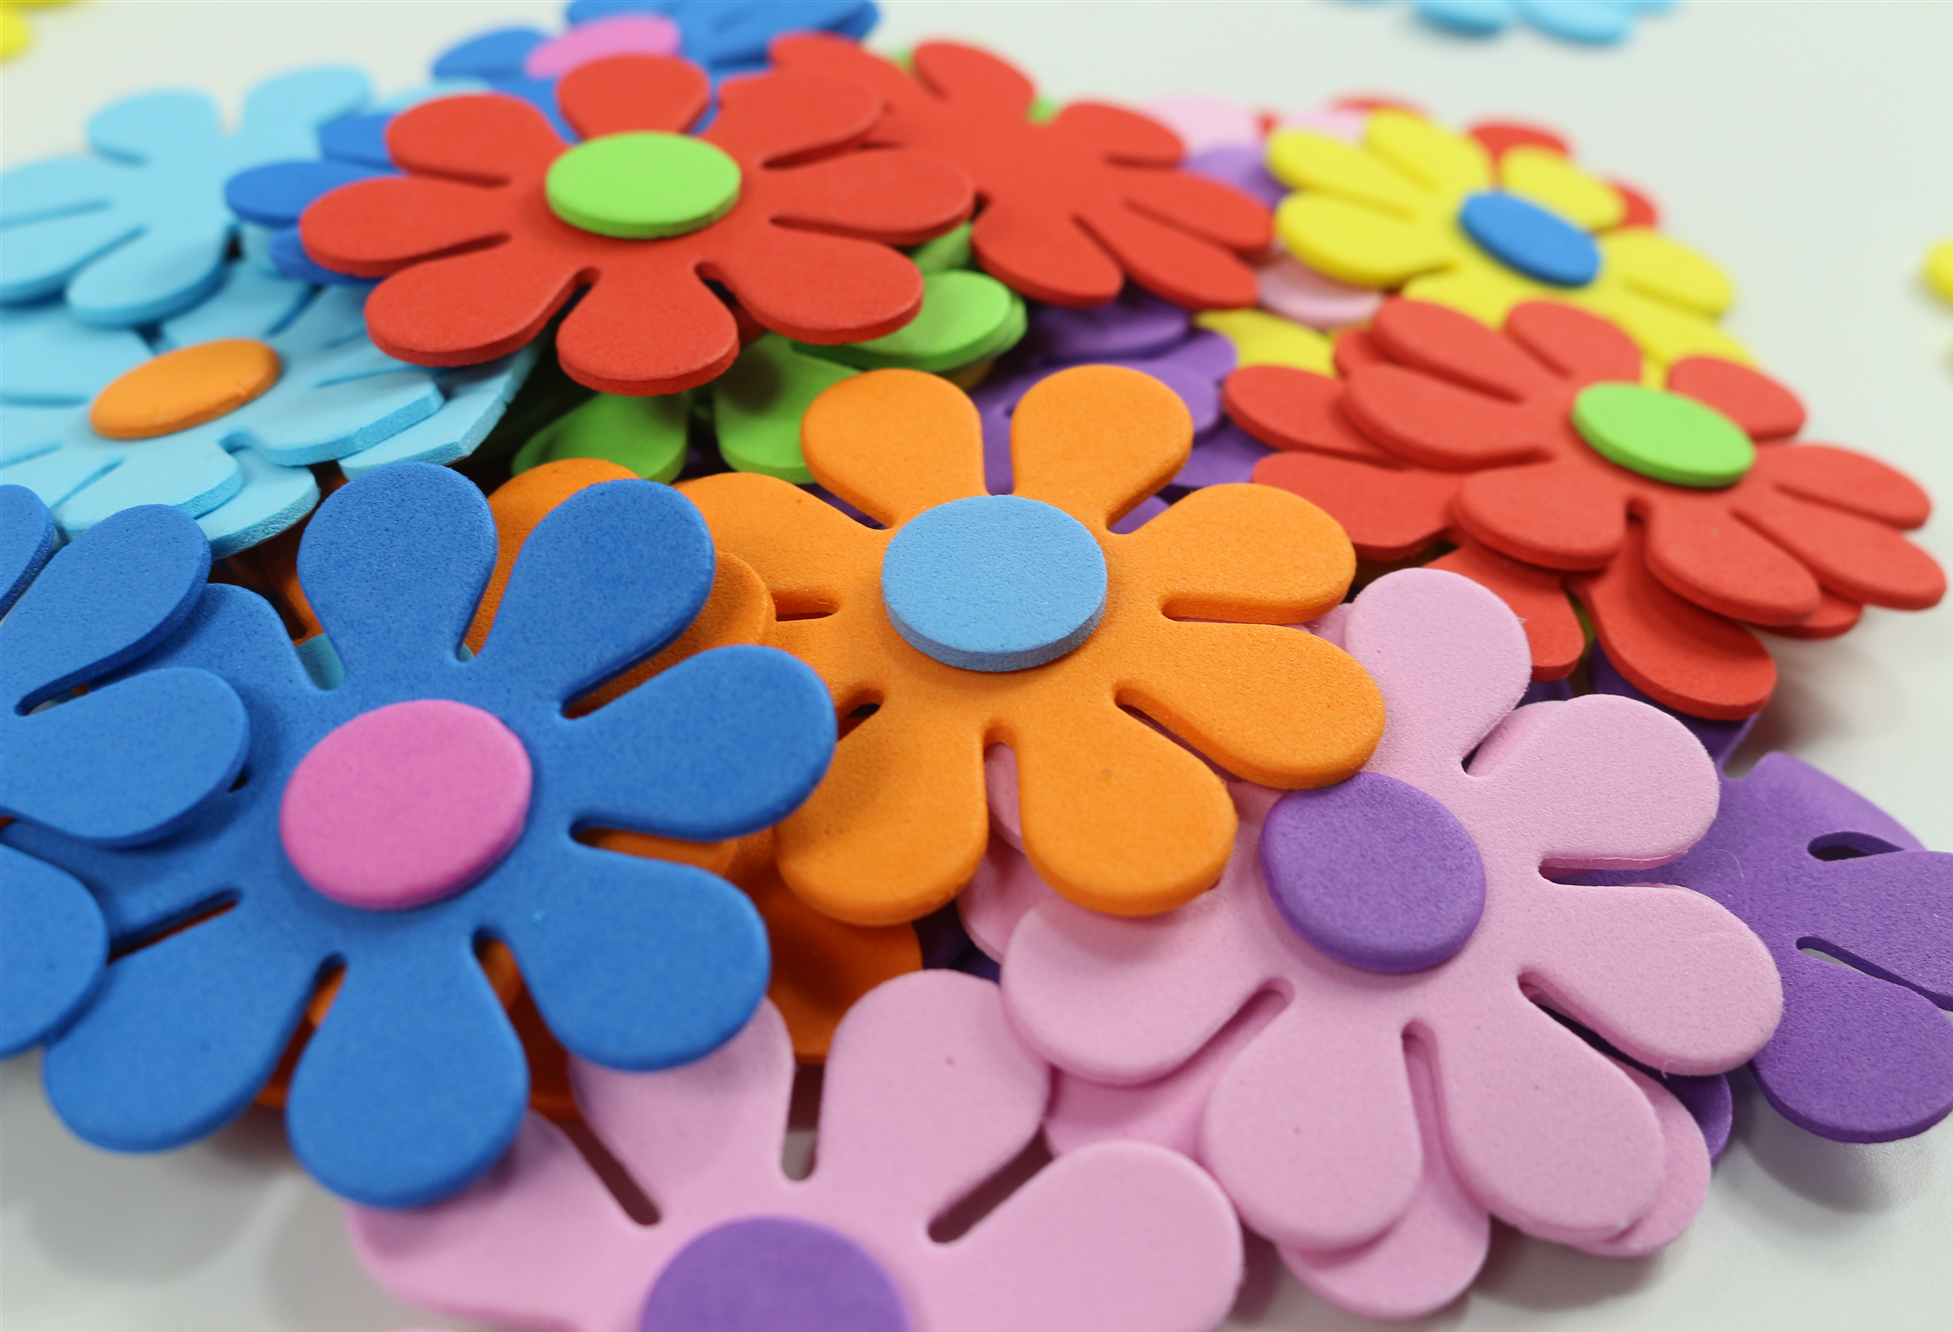 50PCS/bag Mix flowers foam stickers Kids toy Scrapbooking kit Early educational DIY kindergarten arts and craft Wholesale